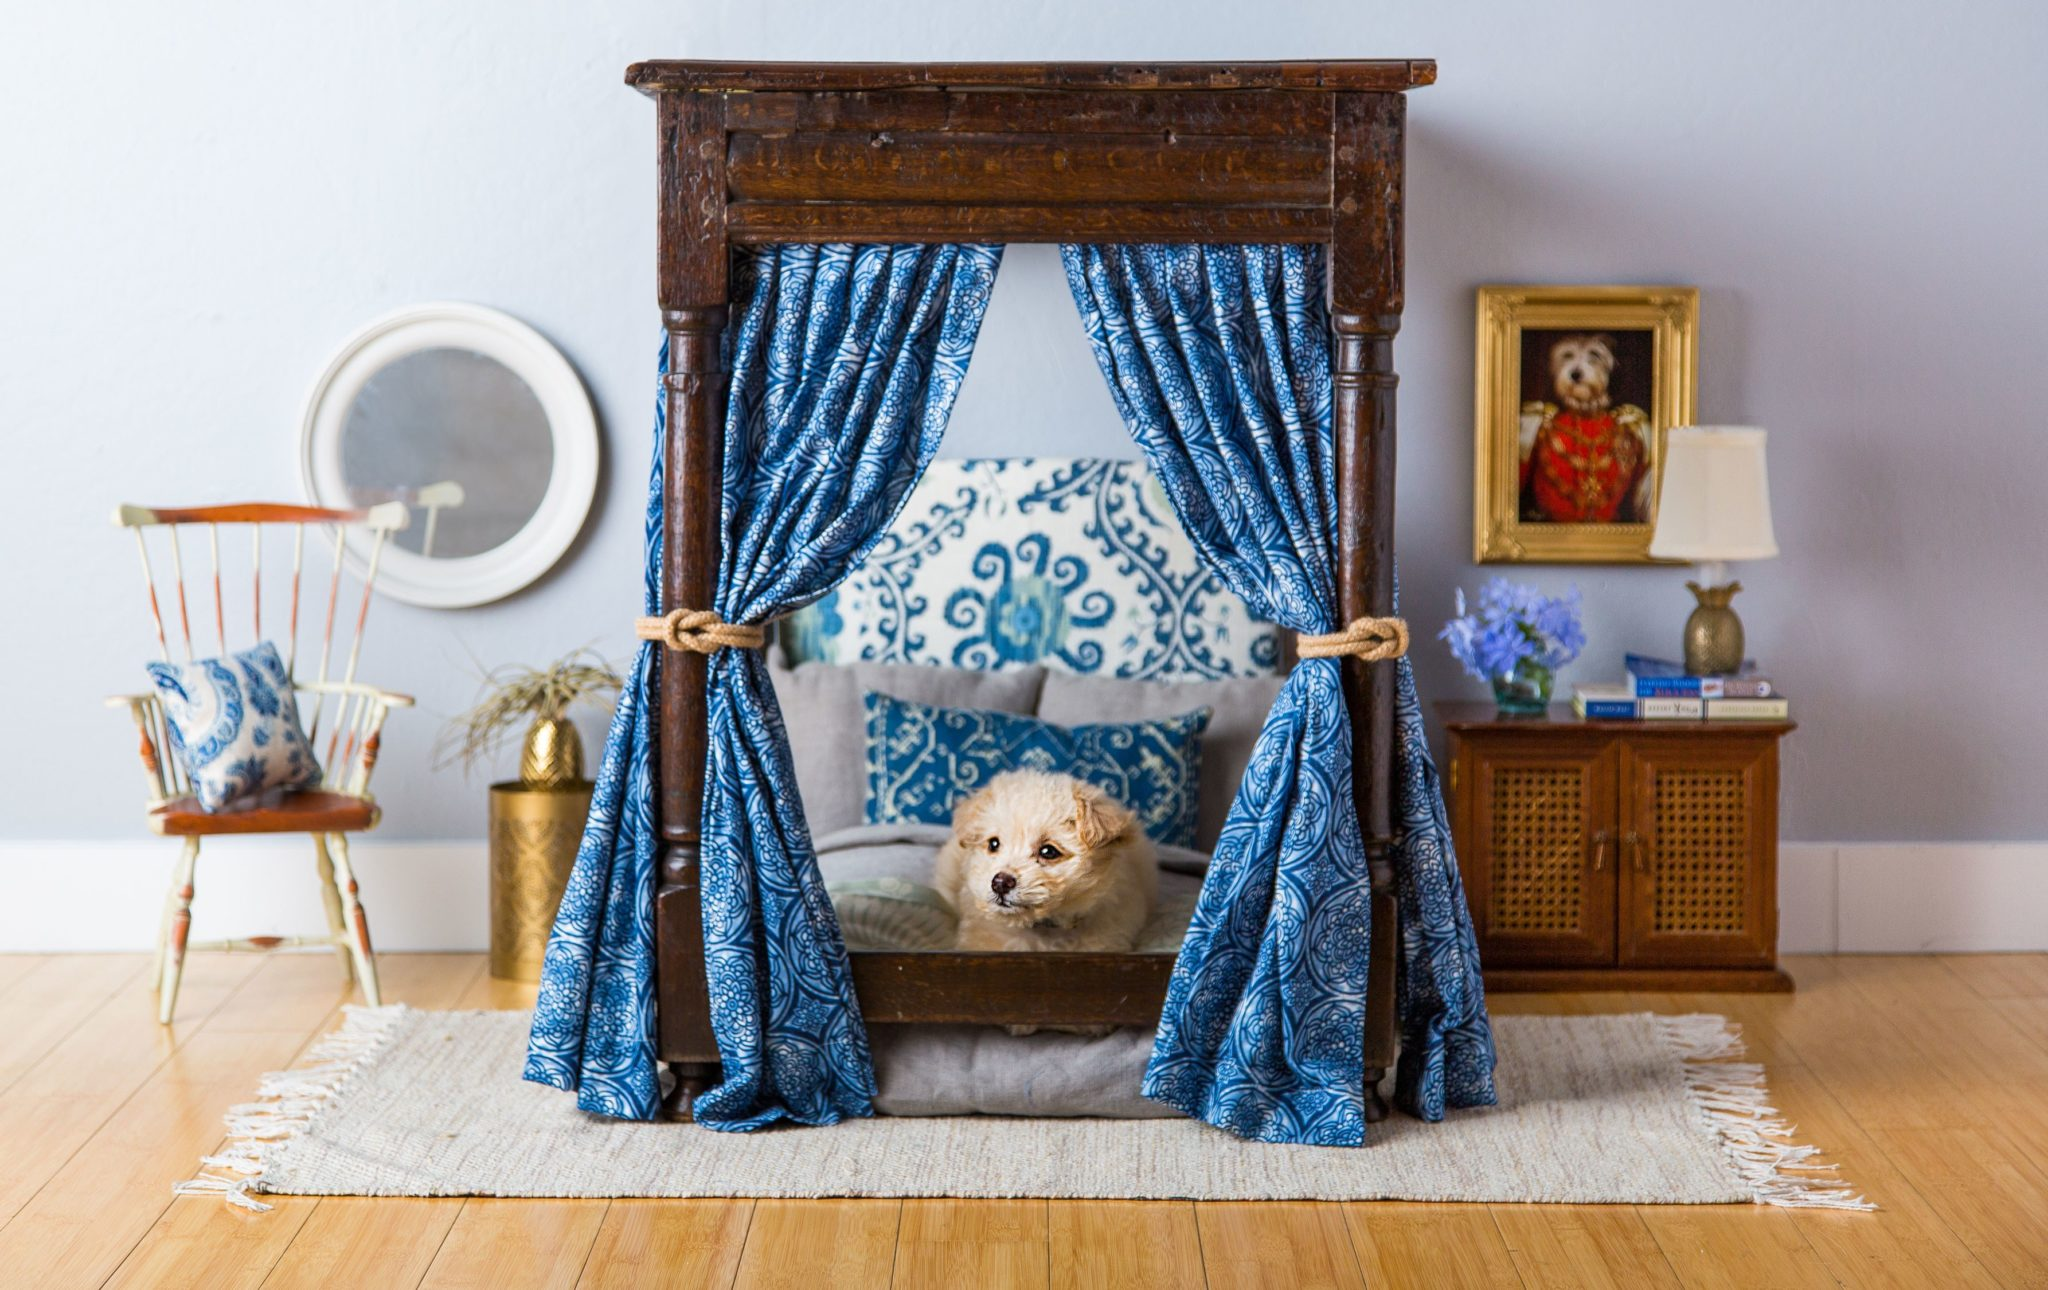 Magnificent and grandiose doggy four poster bed